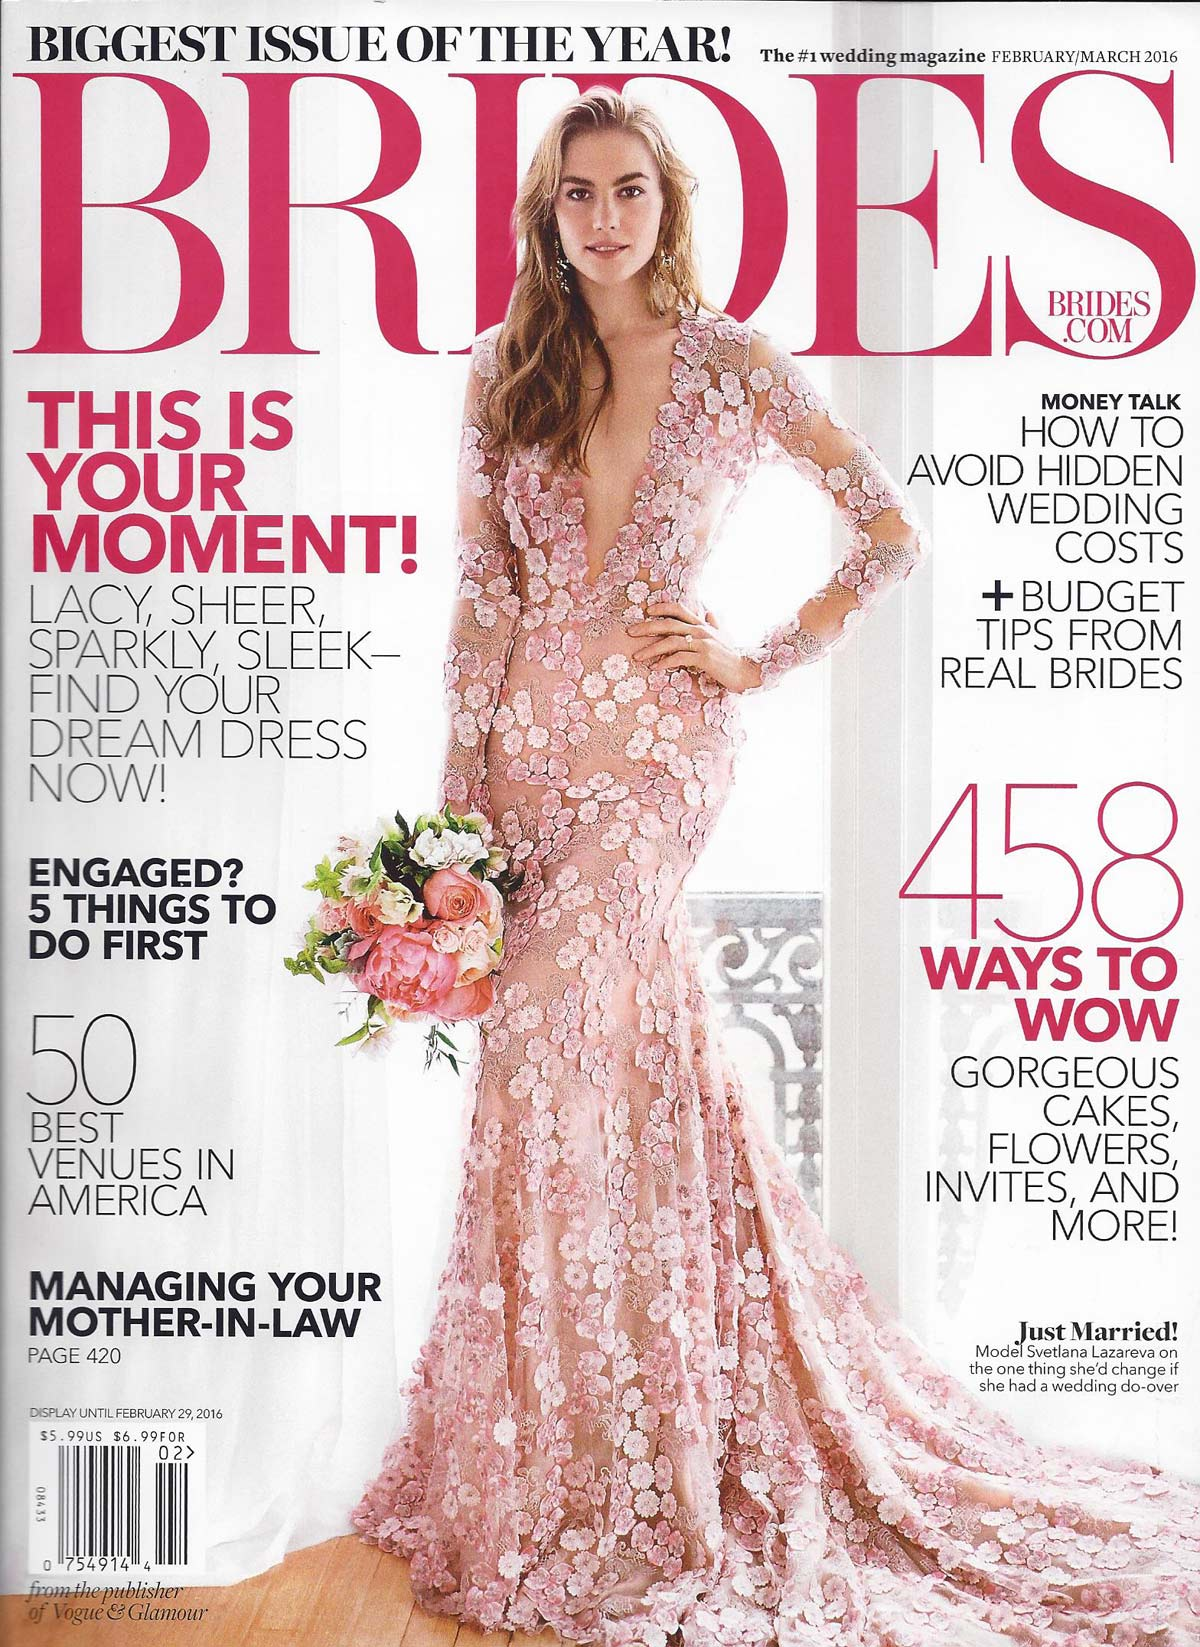 brides february march 2016 magazine, twigs and honey earrings